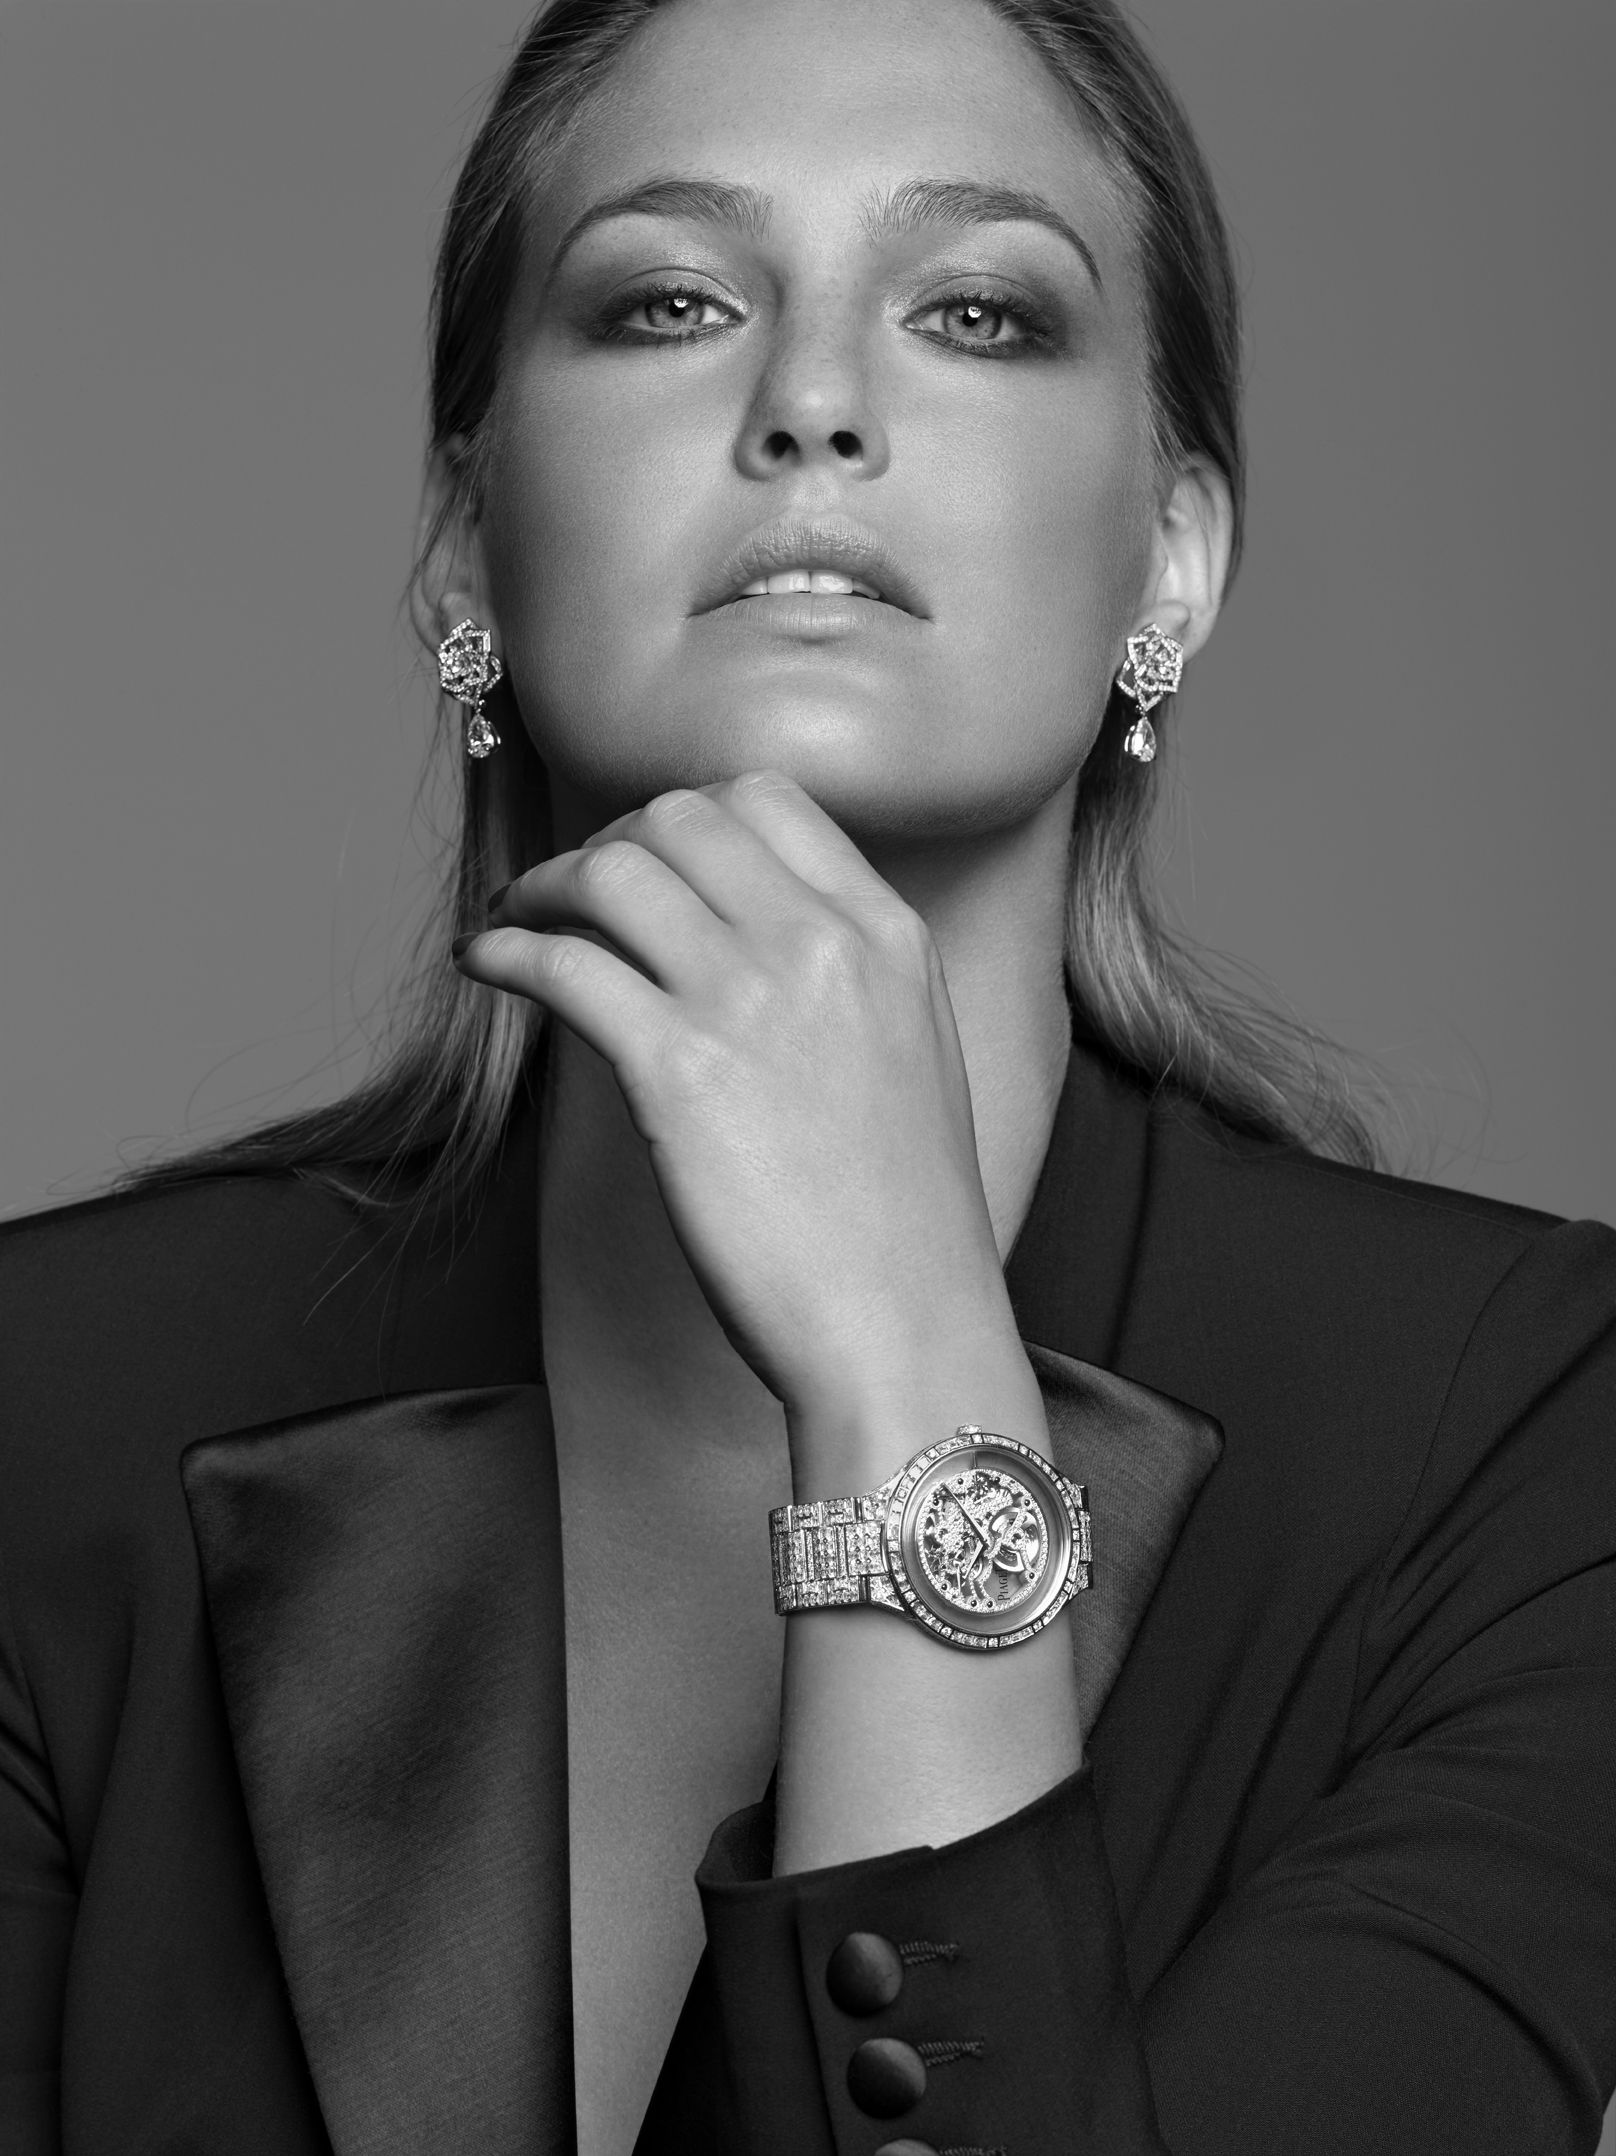 Bar refaeli wearing the piaget dancer skeleton watch celebrities in jewelry bar refaeli for Woman celebrity watches